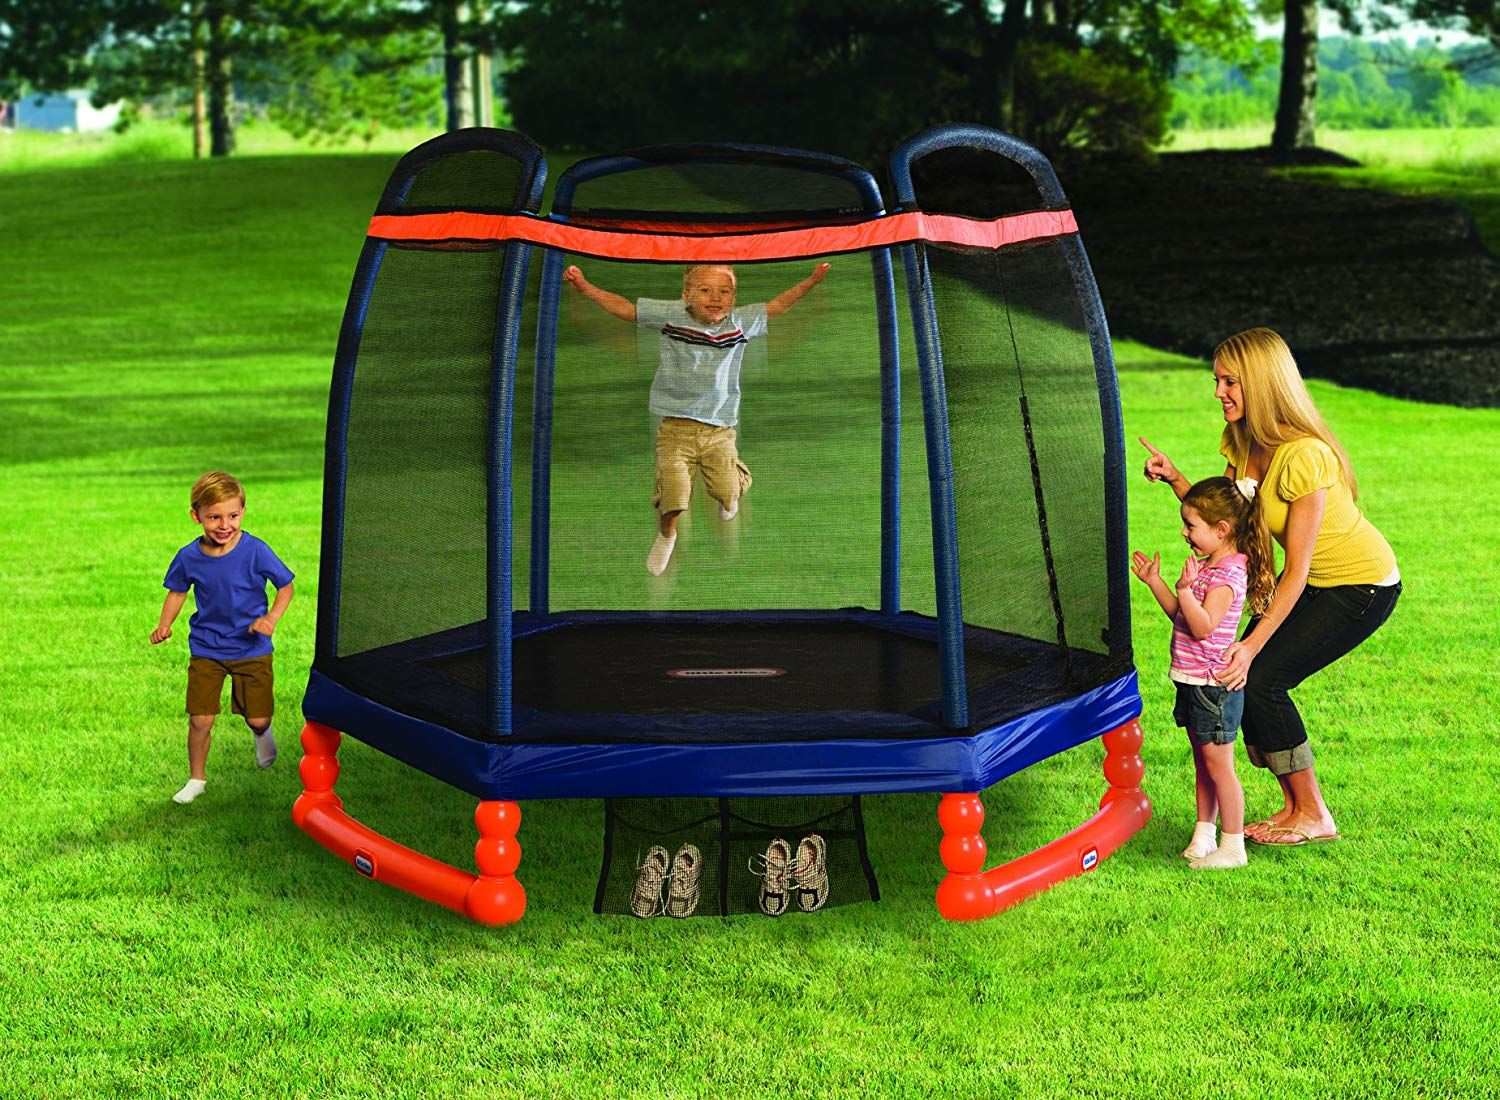 Best Gifts and Toys for 6 Year Old Girls Kids trampoline